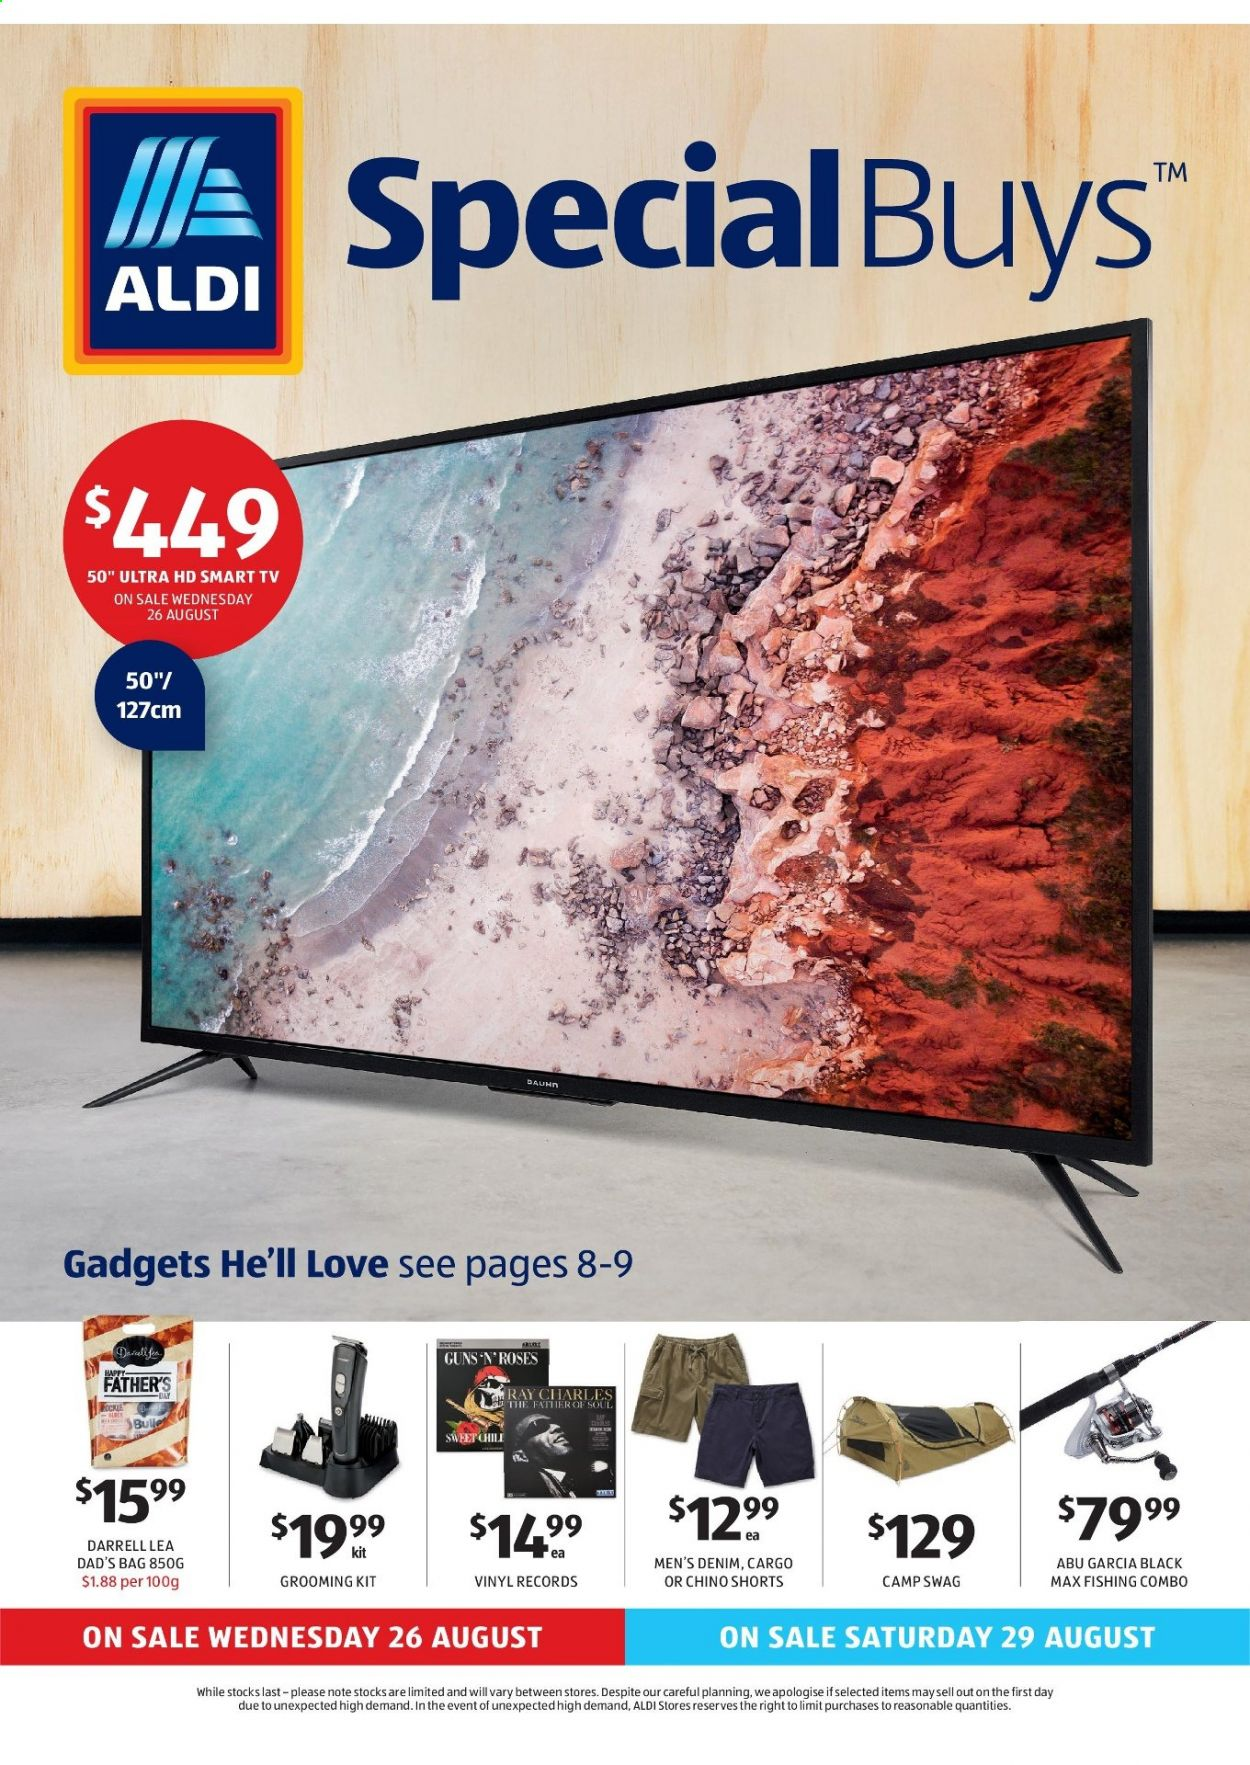 ALDI Catalogue - 26.8.2020 - 1.9.2020 - Sales products - shorts, smart tv, uhd tv, ultra hd, jeans, roses, fishing, vinyl. Page 1.